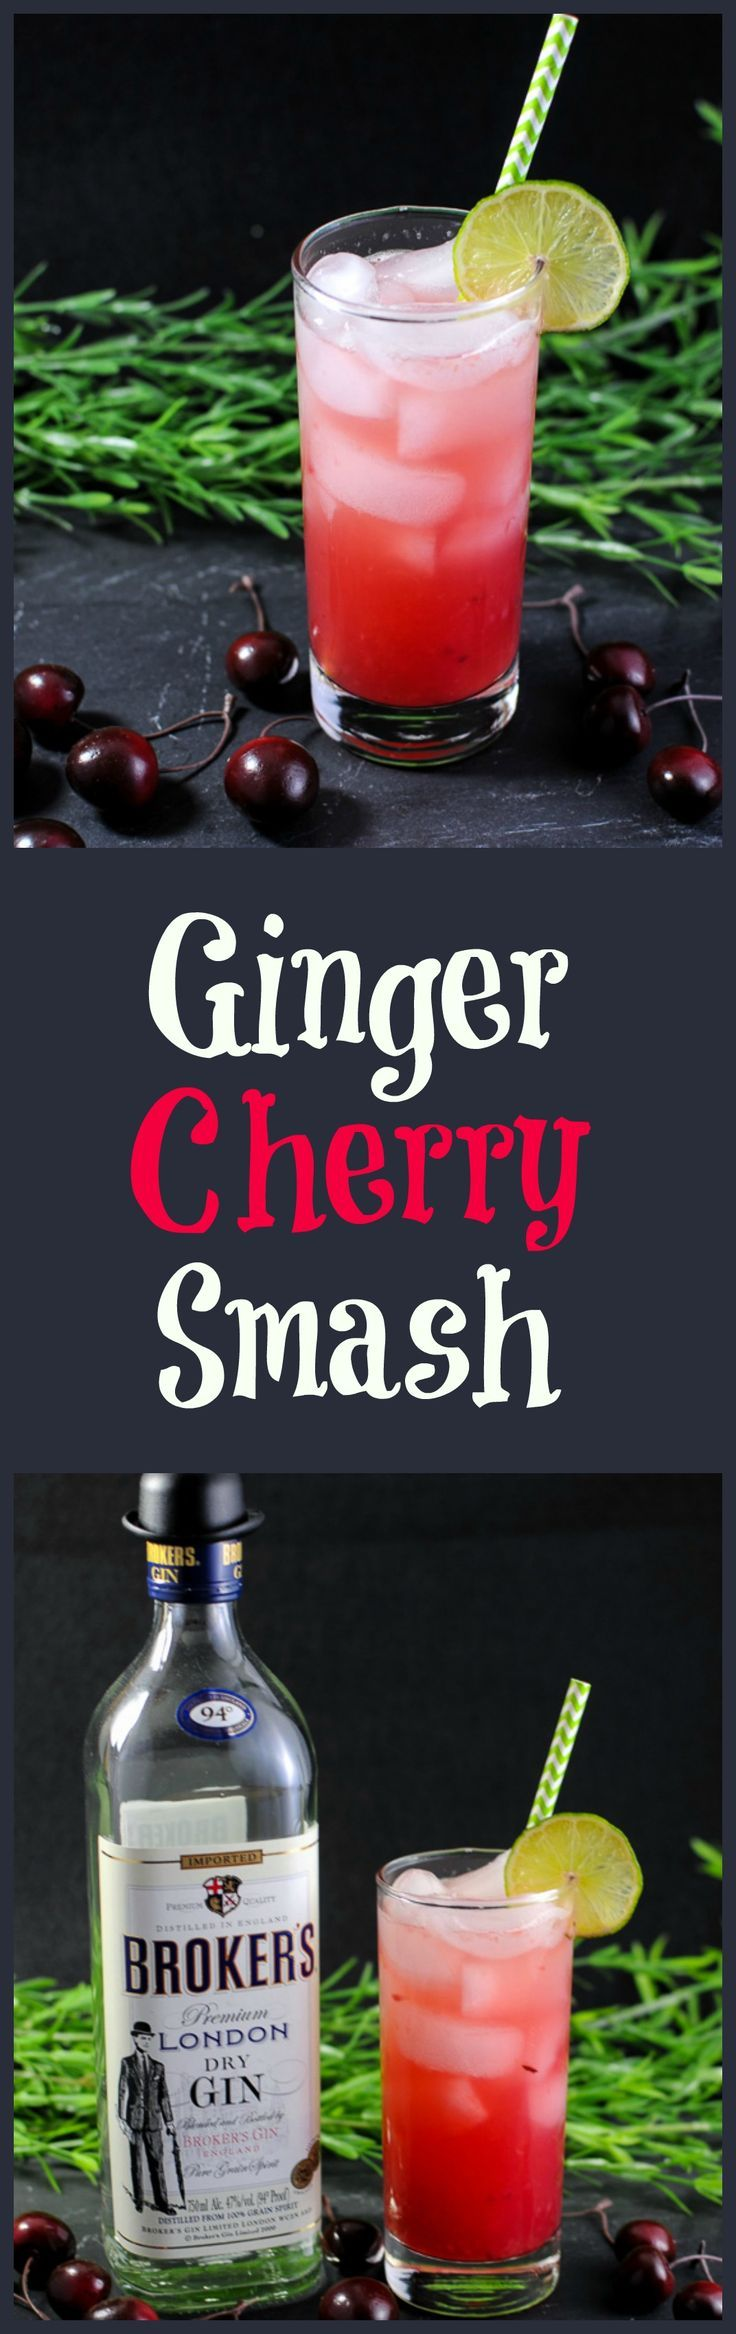 Ginger Cherry Smash Cocktail - gin, cherries, lime juice, club soda, ginger liqueur